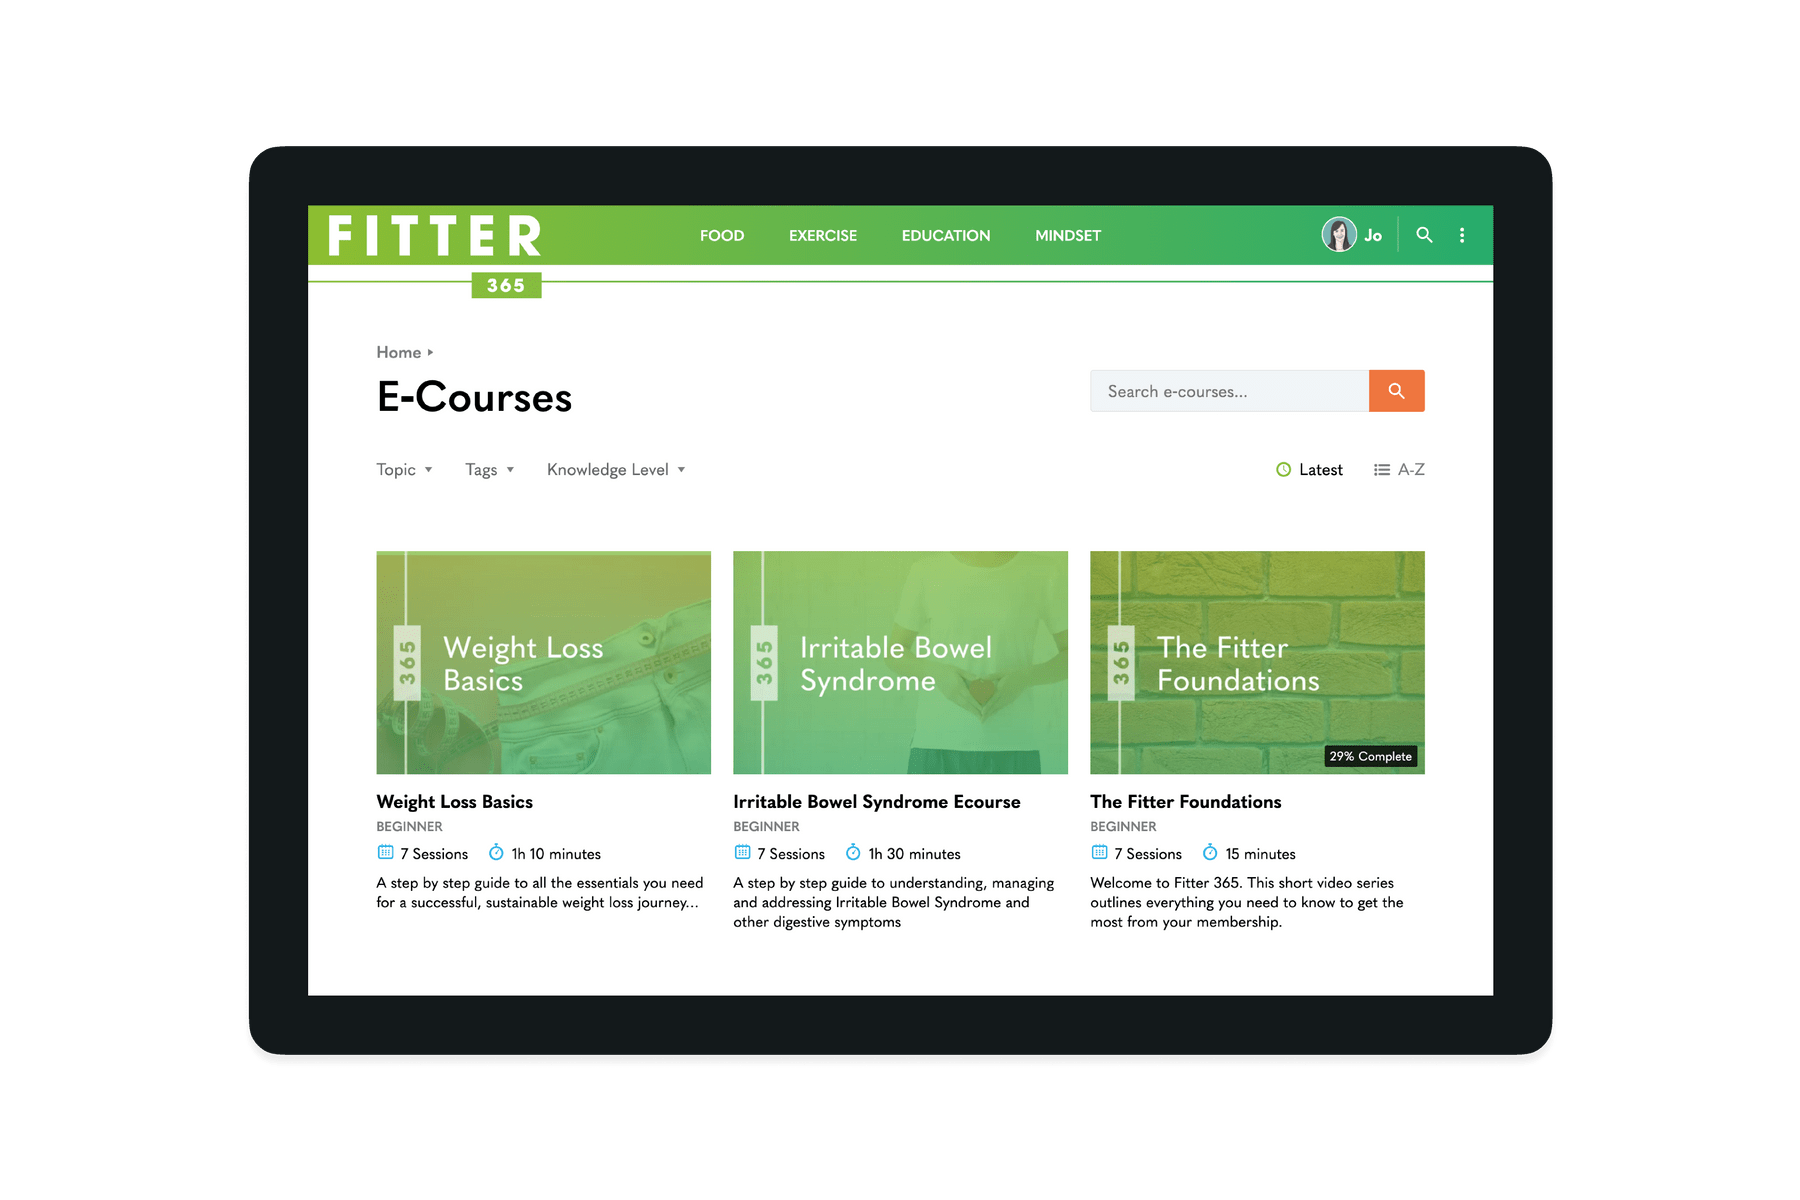 Tablet showing the Ecourses on the Fitter 365 website